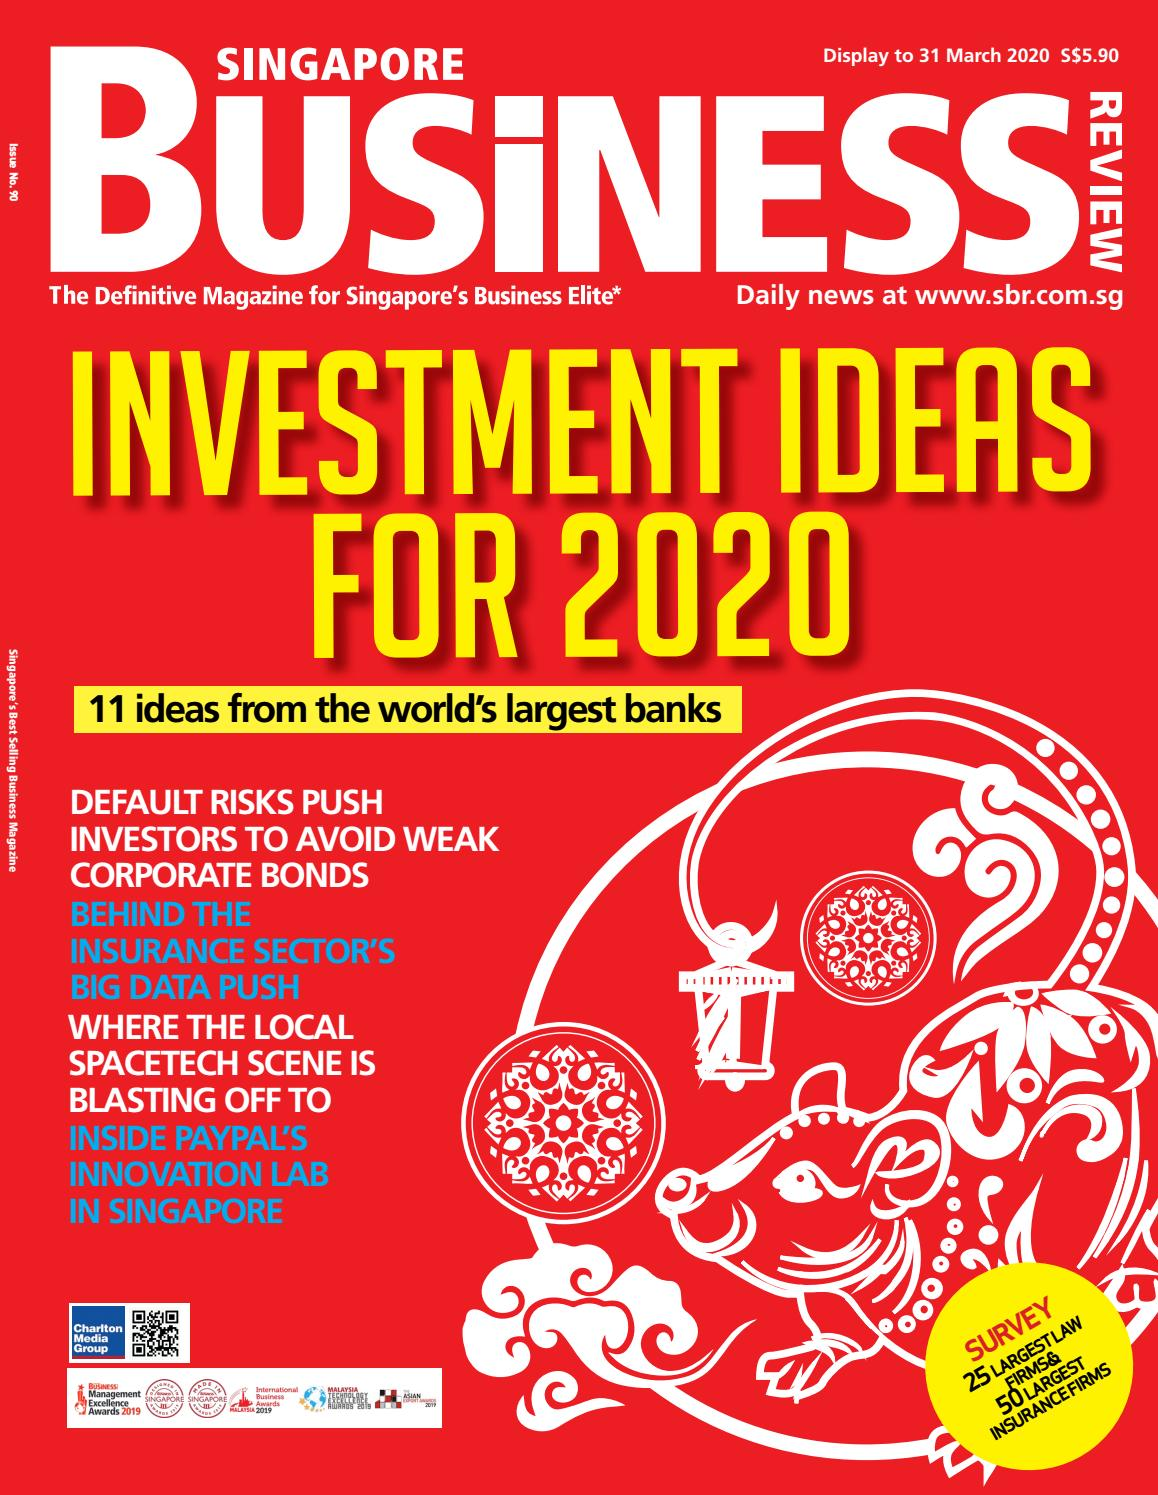 Future cost pressures for a business sandhu 2020 forex